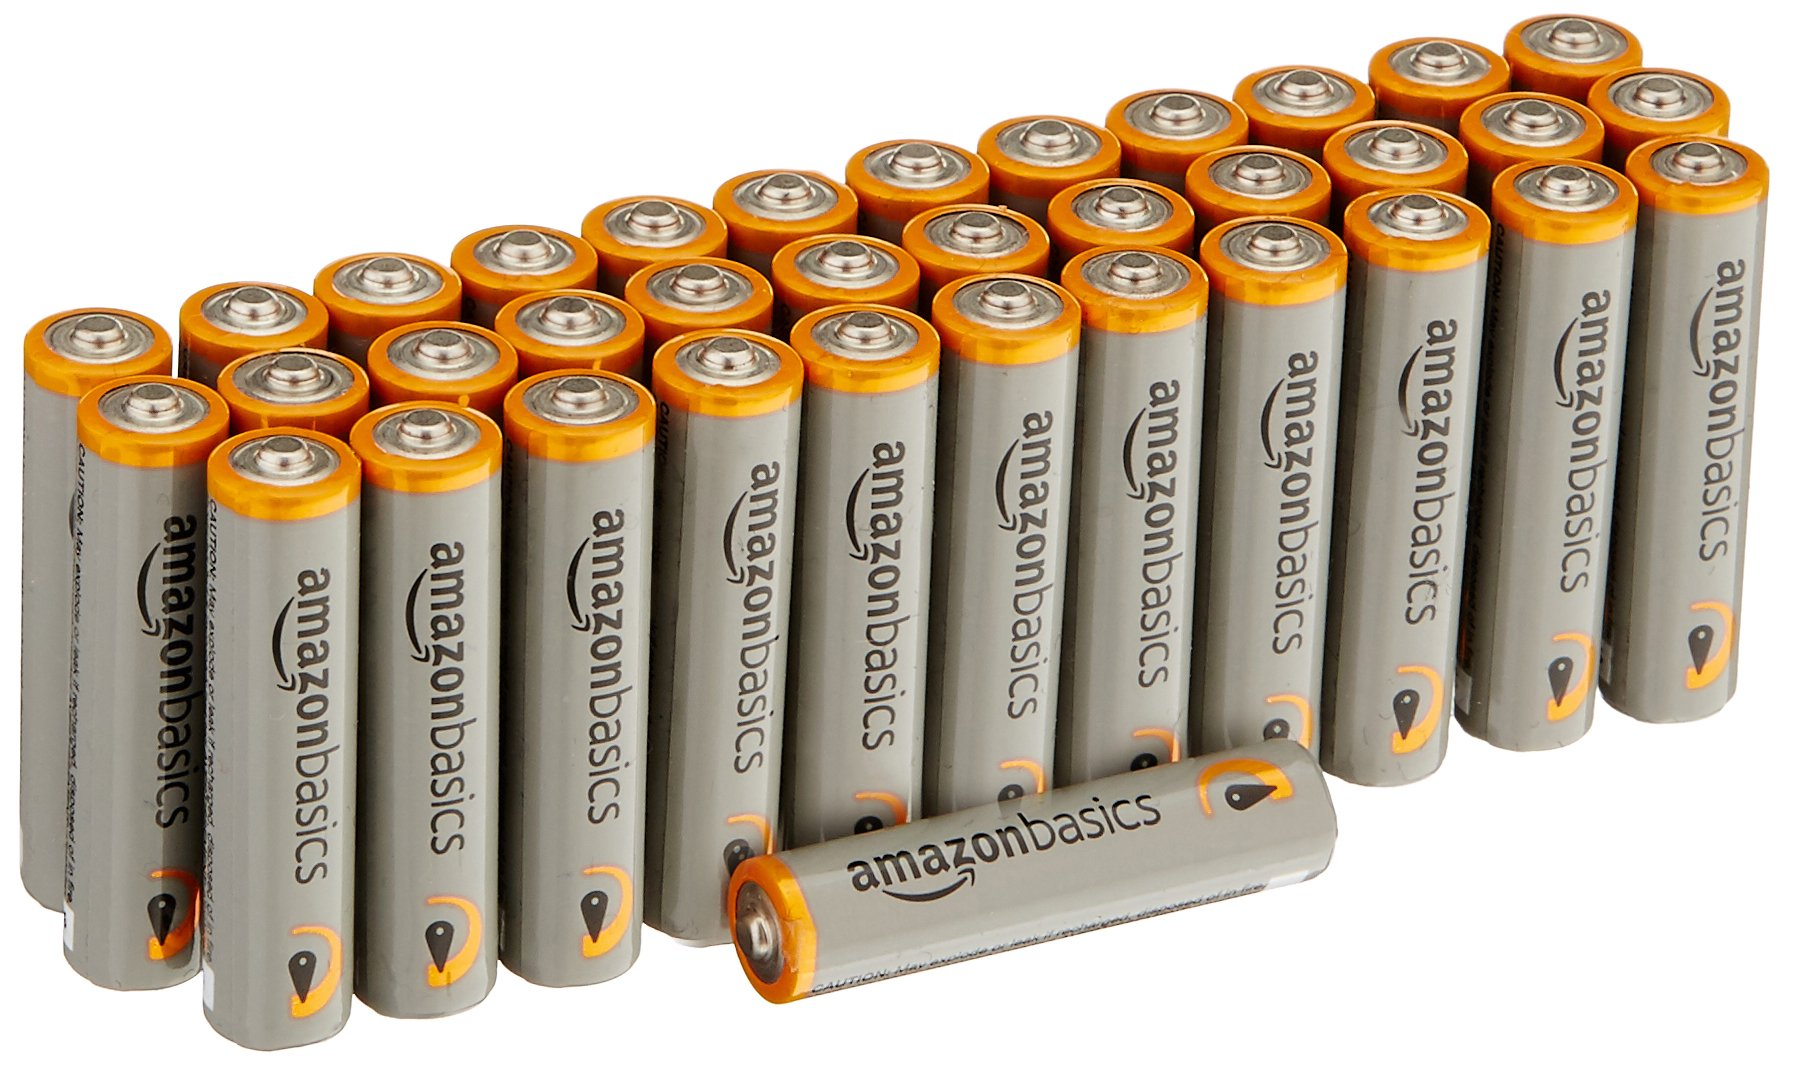 AmazonBasics AAA Performance Alkaline Batteries (36 Count) product image